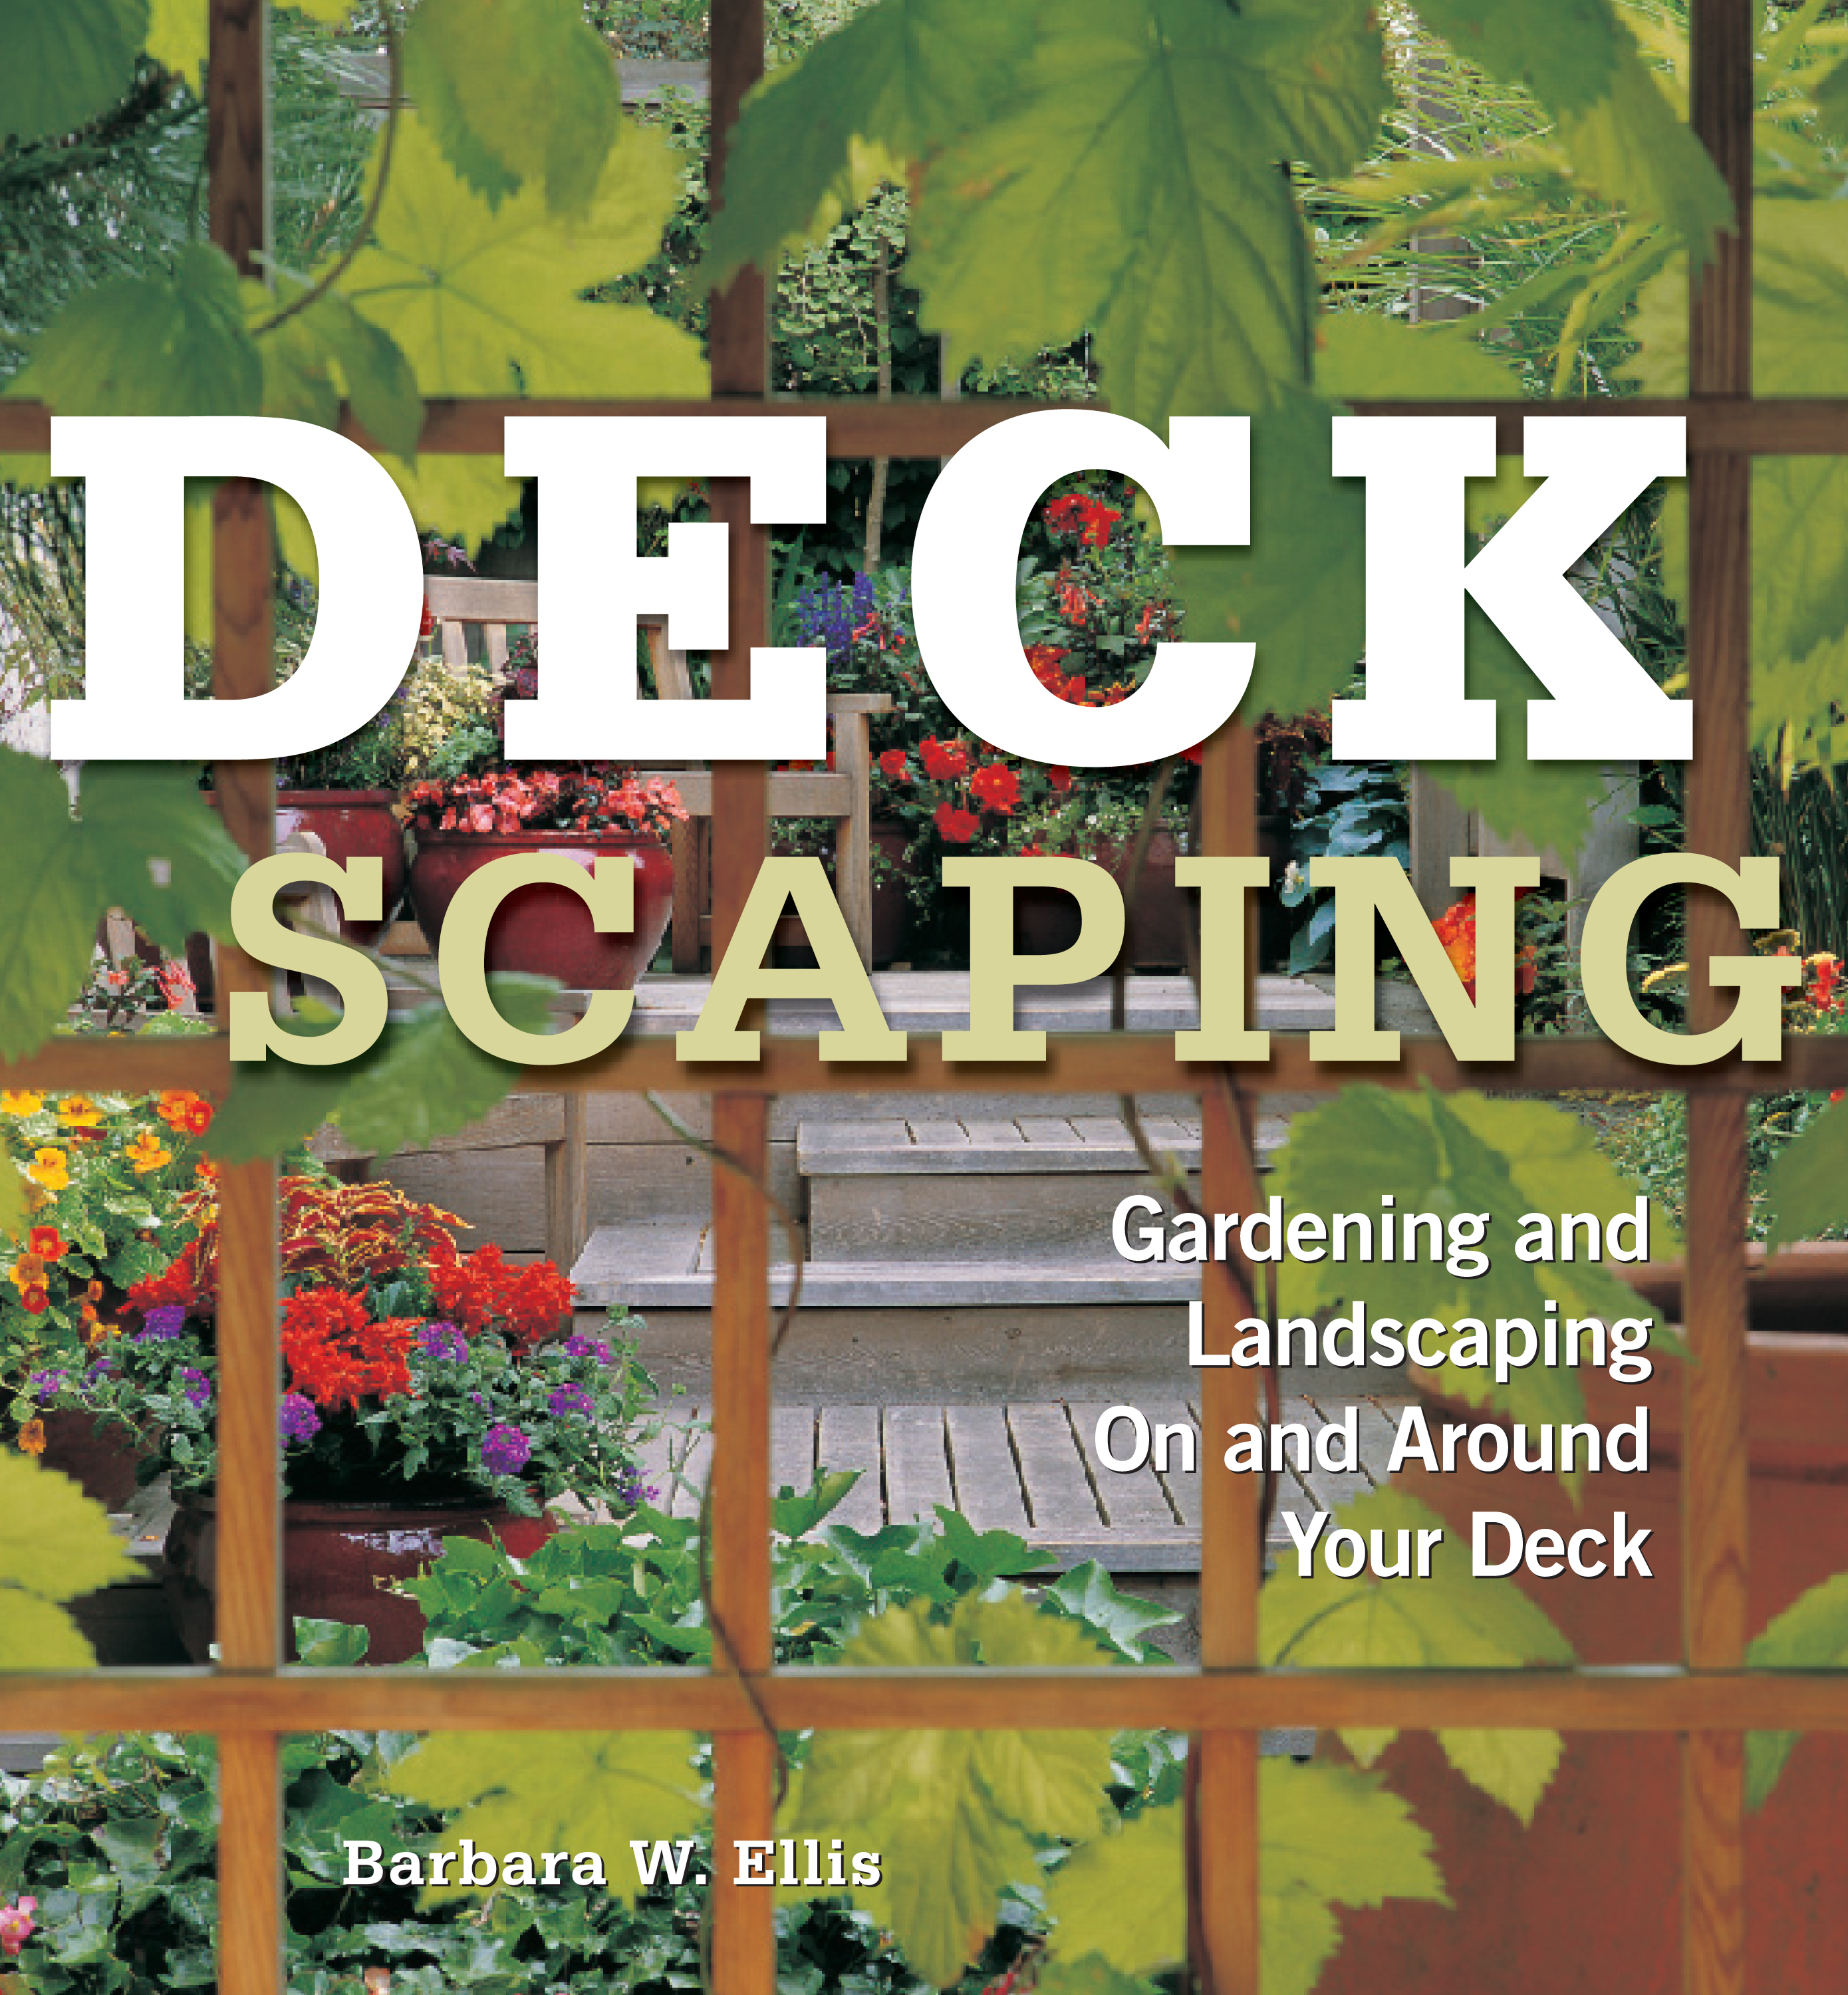 Deckscaping Gardening and Landscaping On and Around Your Deck - Barbara W. Ellis